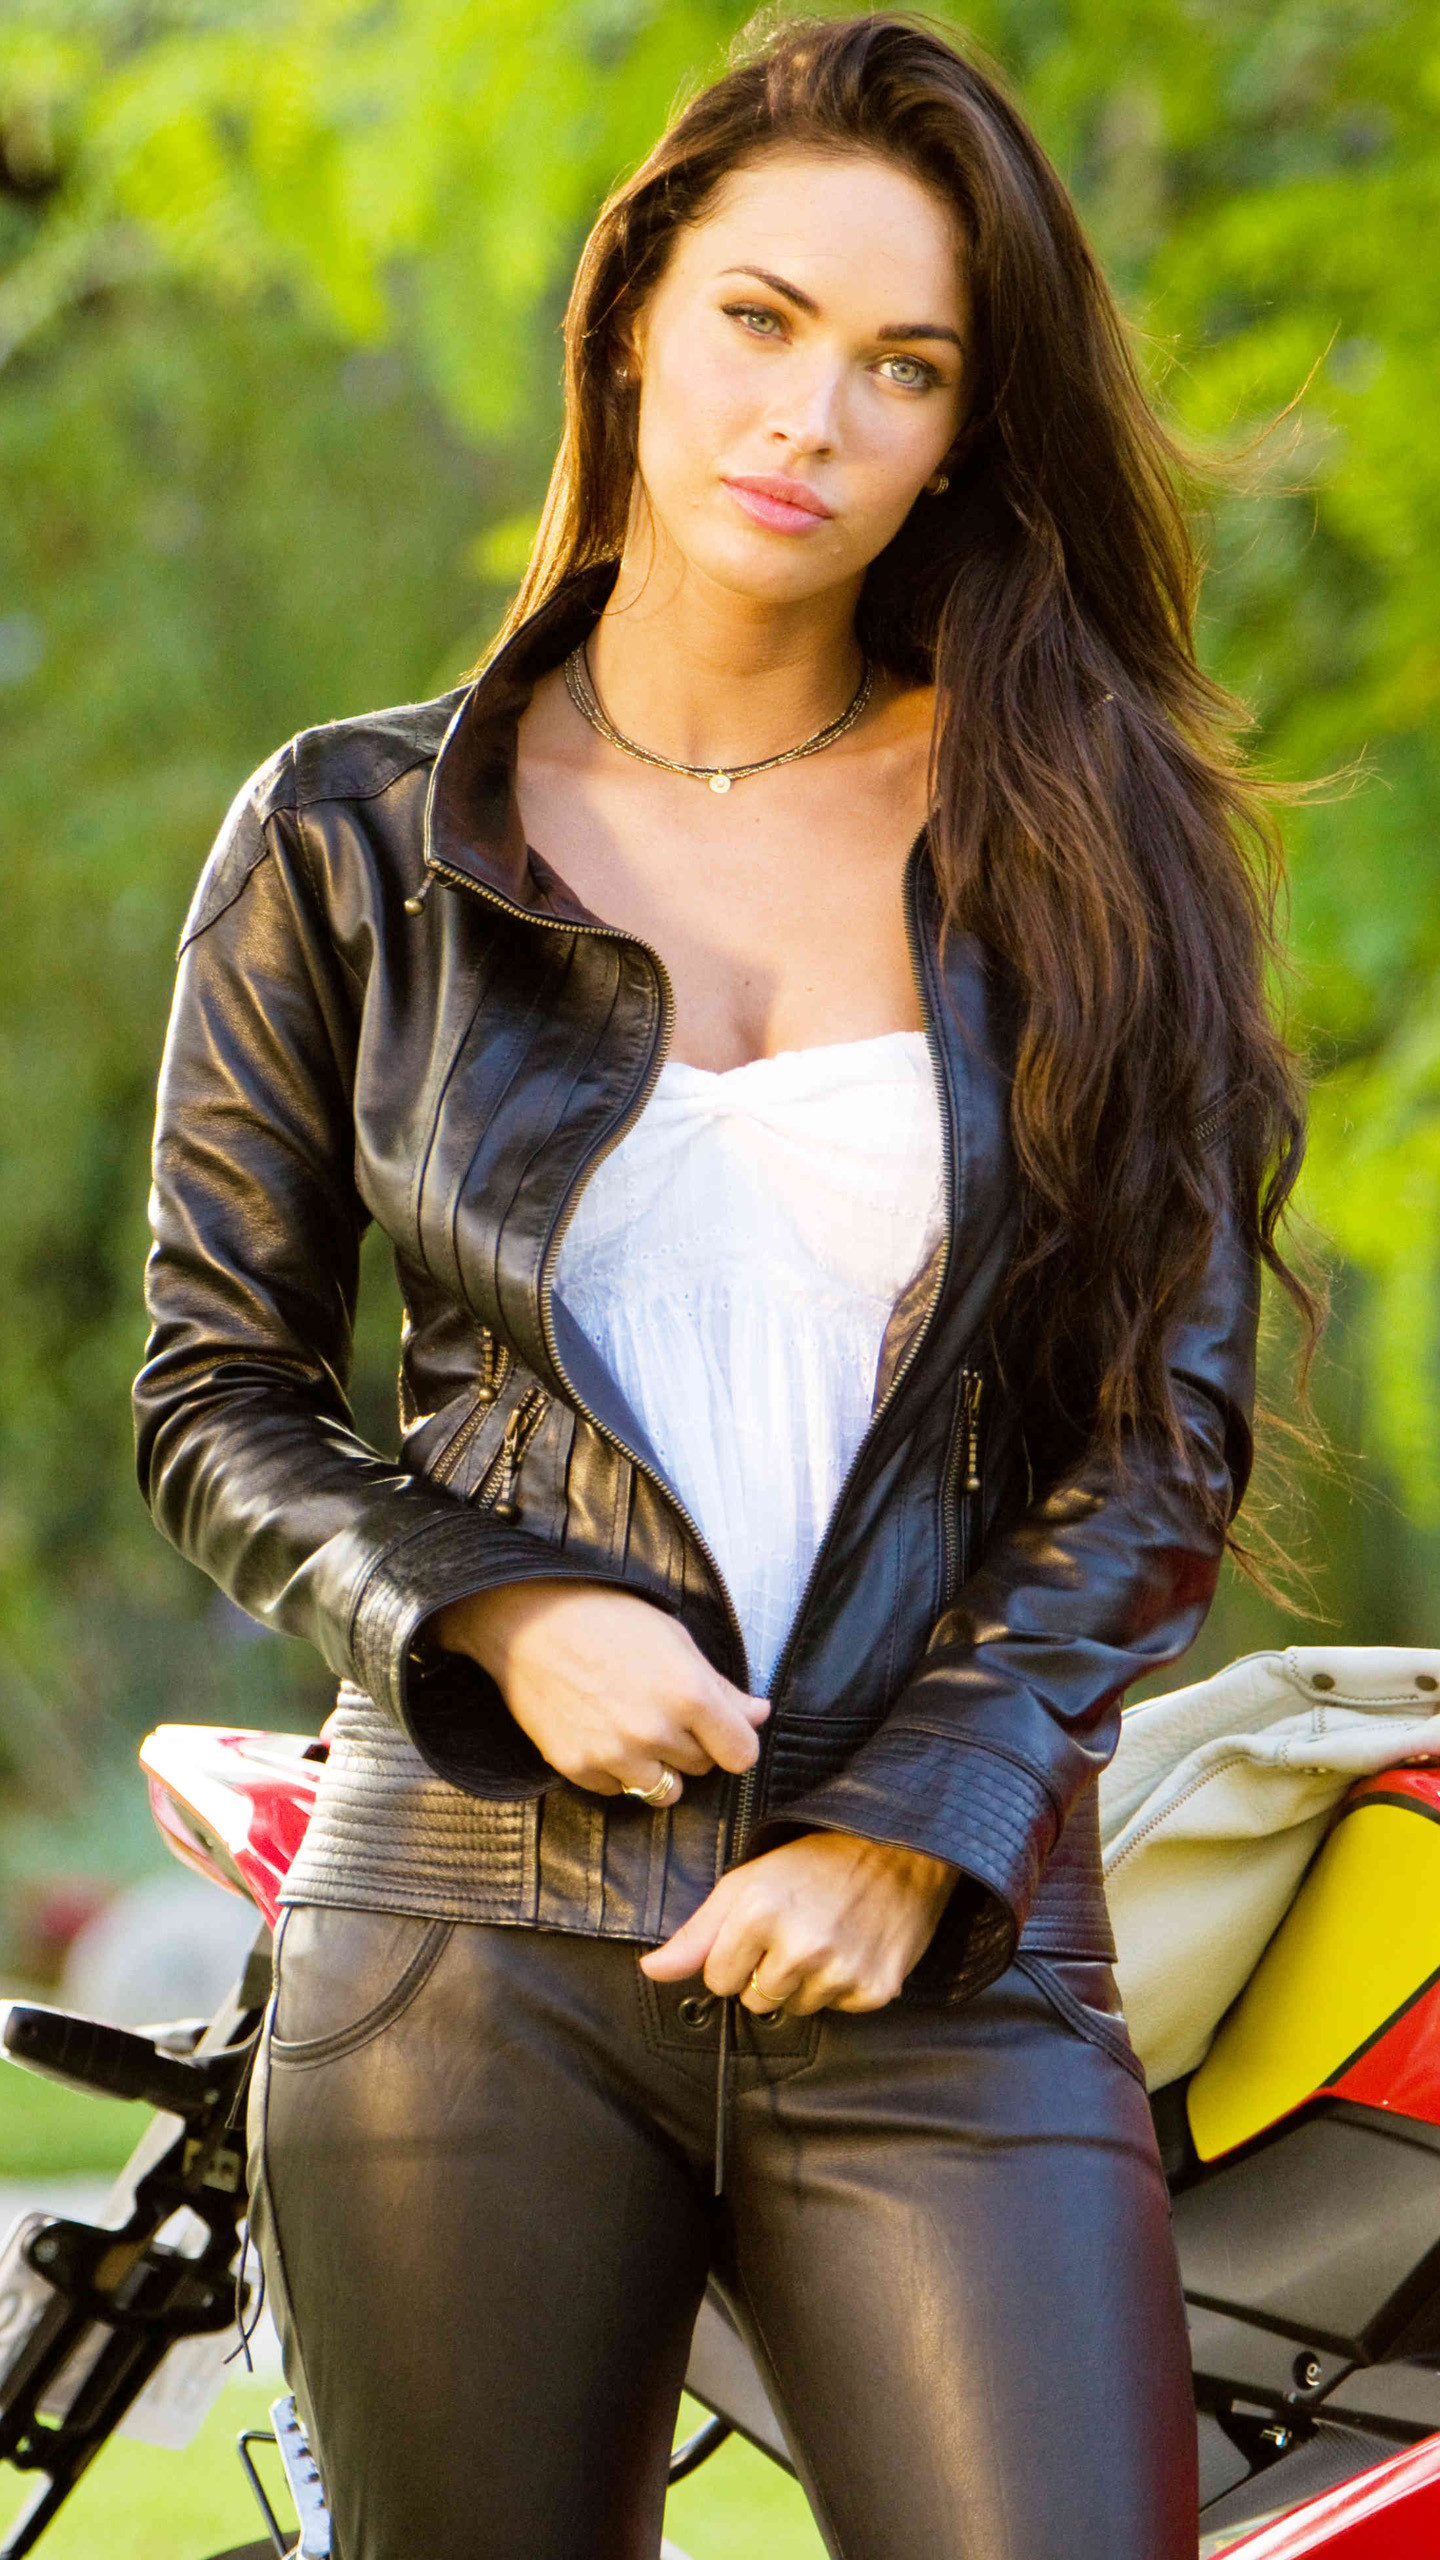 Motorcycle girl Galaxy S6 Wallpaper | Galaxy S6 Wallpapers